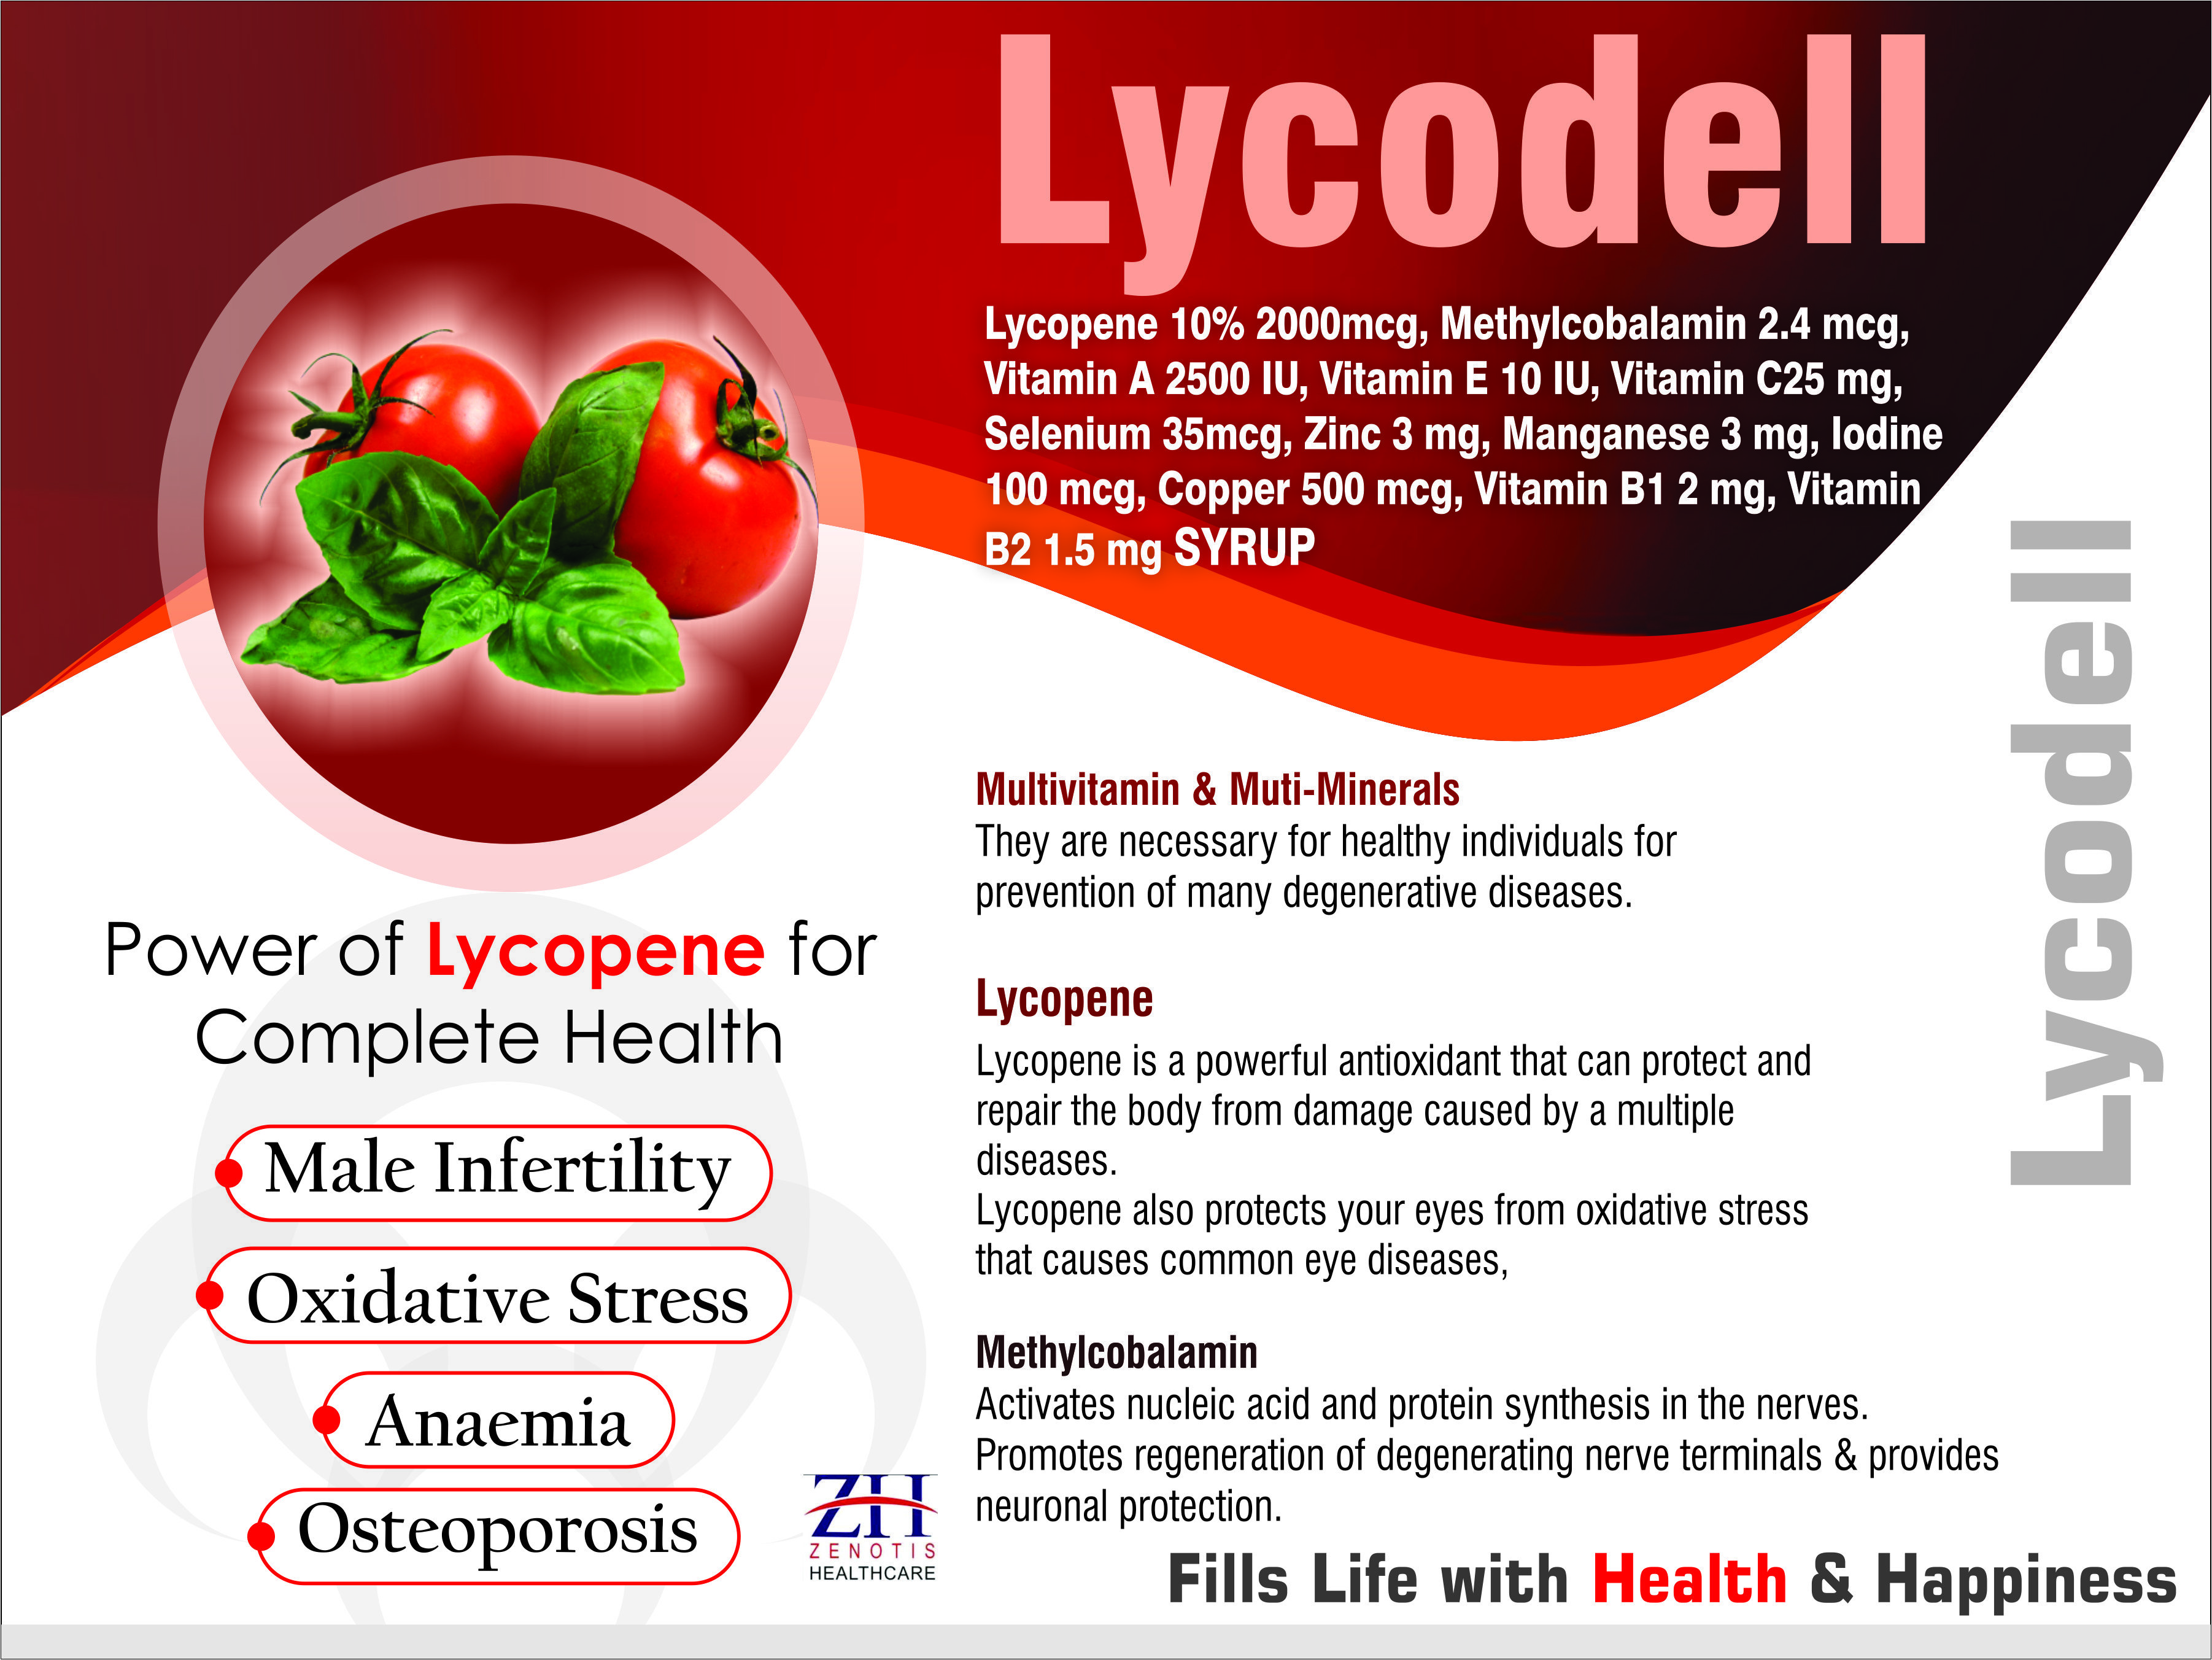 Lycopene Methylcobalamin Multivitamin Multimineral and Antioxidant Syrup